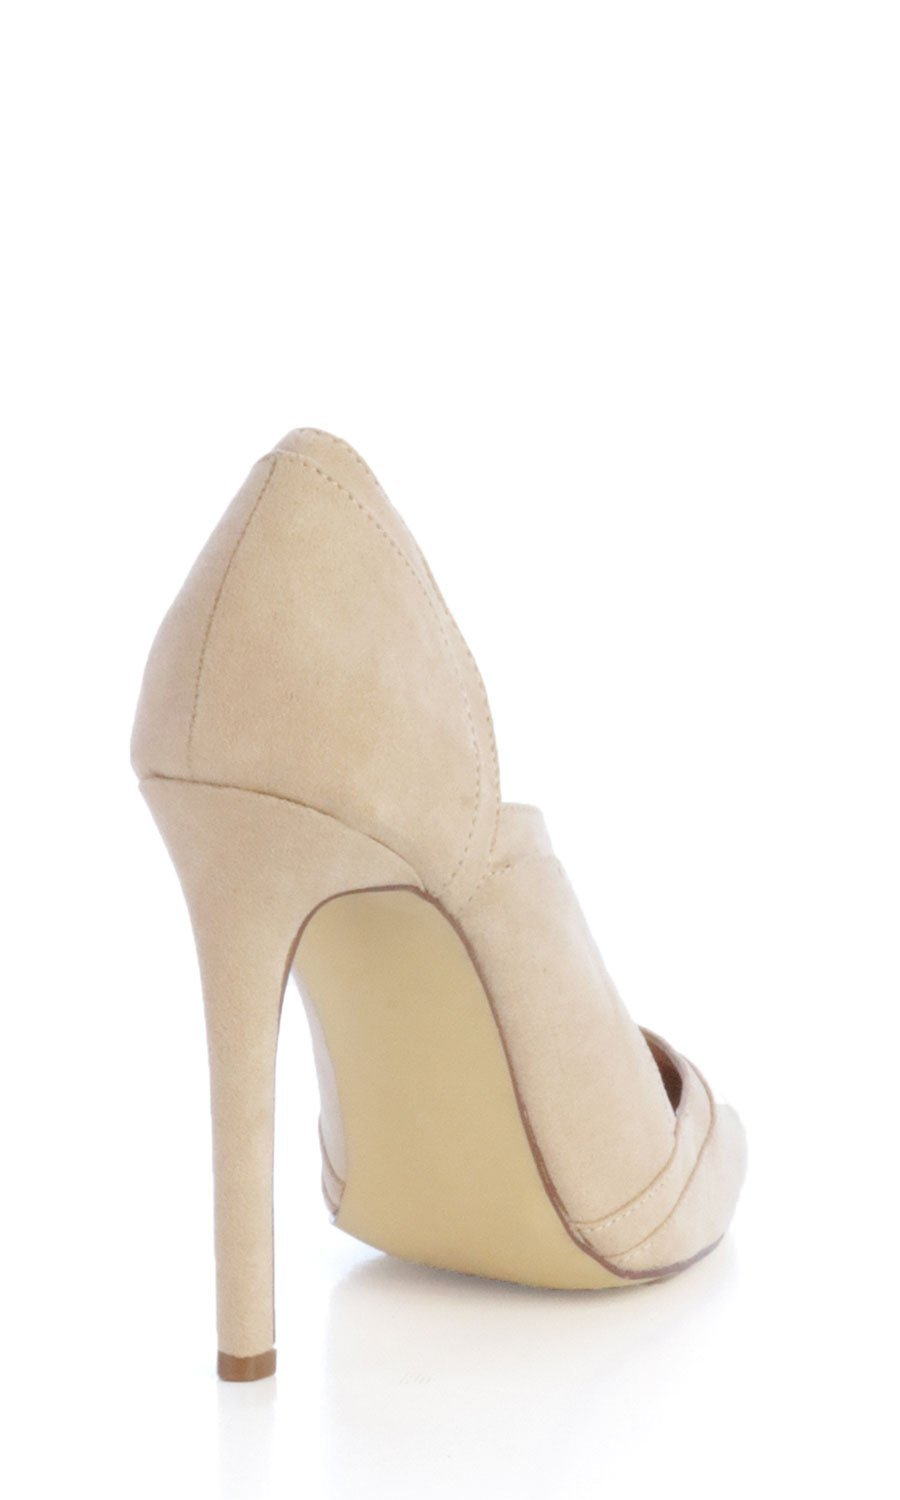 Jessica - Suede Pumps